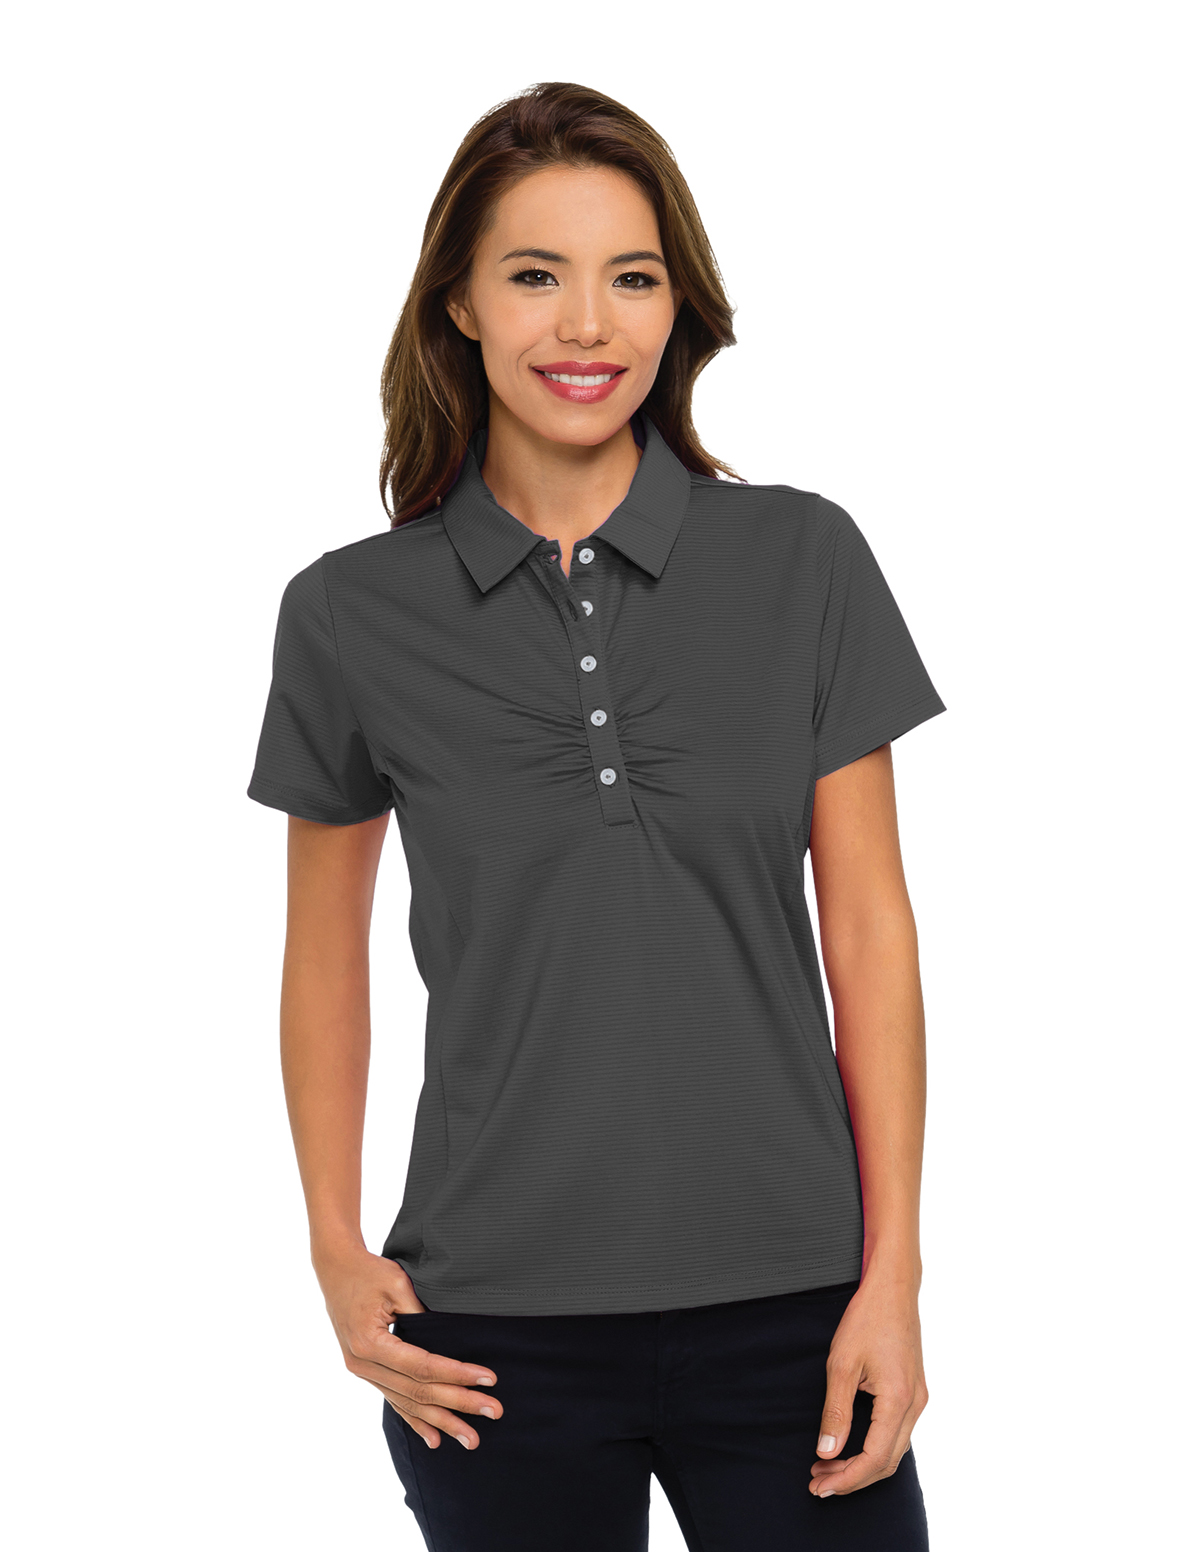 Tri Mountain Apparel Kl435 Calera Womens 92 Polyester 8